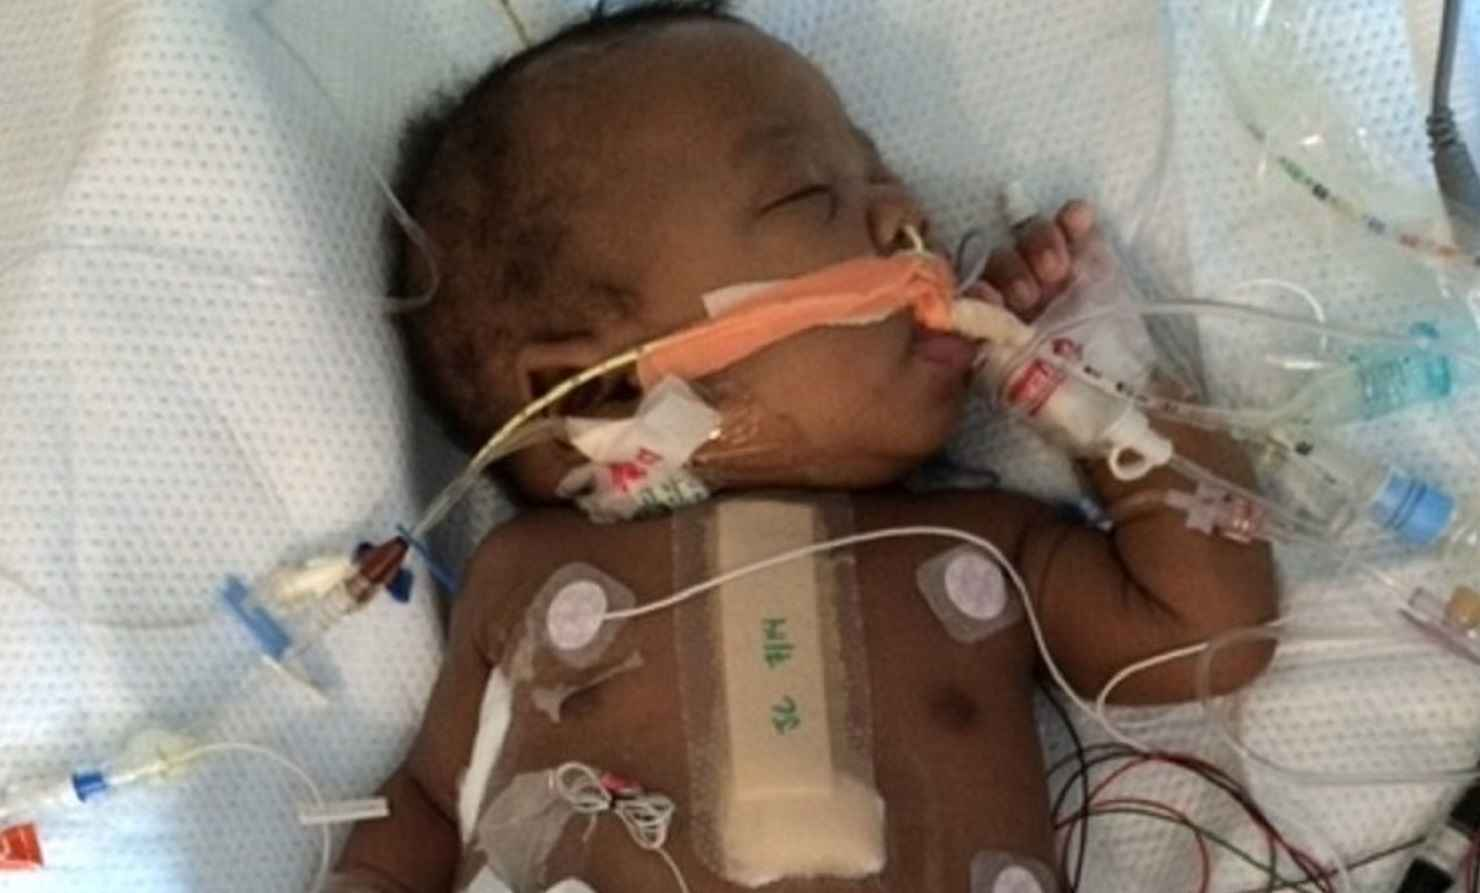 Donate today to ensure no family endures the CHD journey alone. image